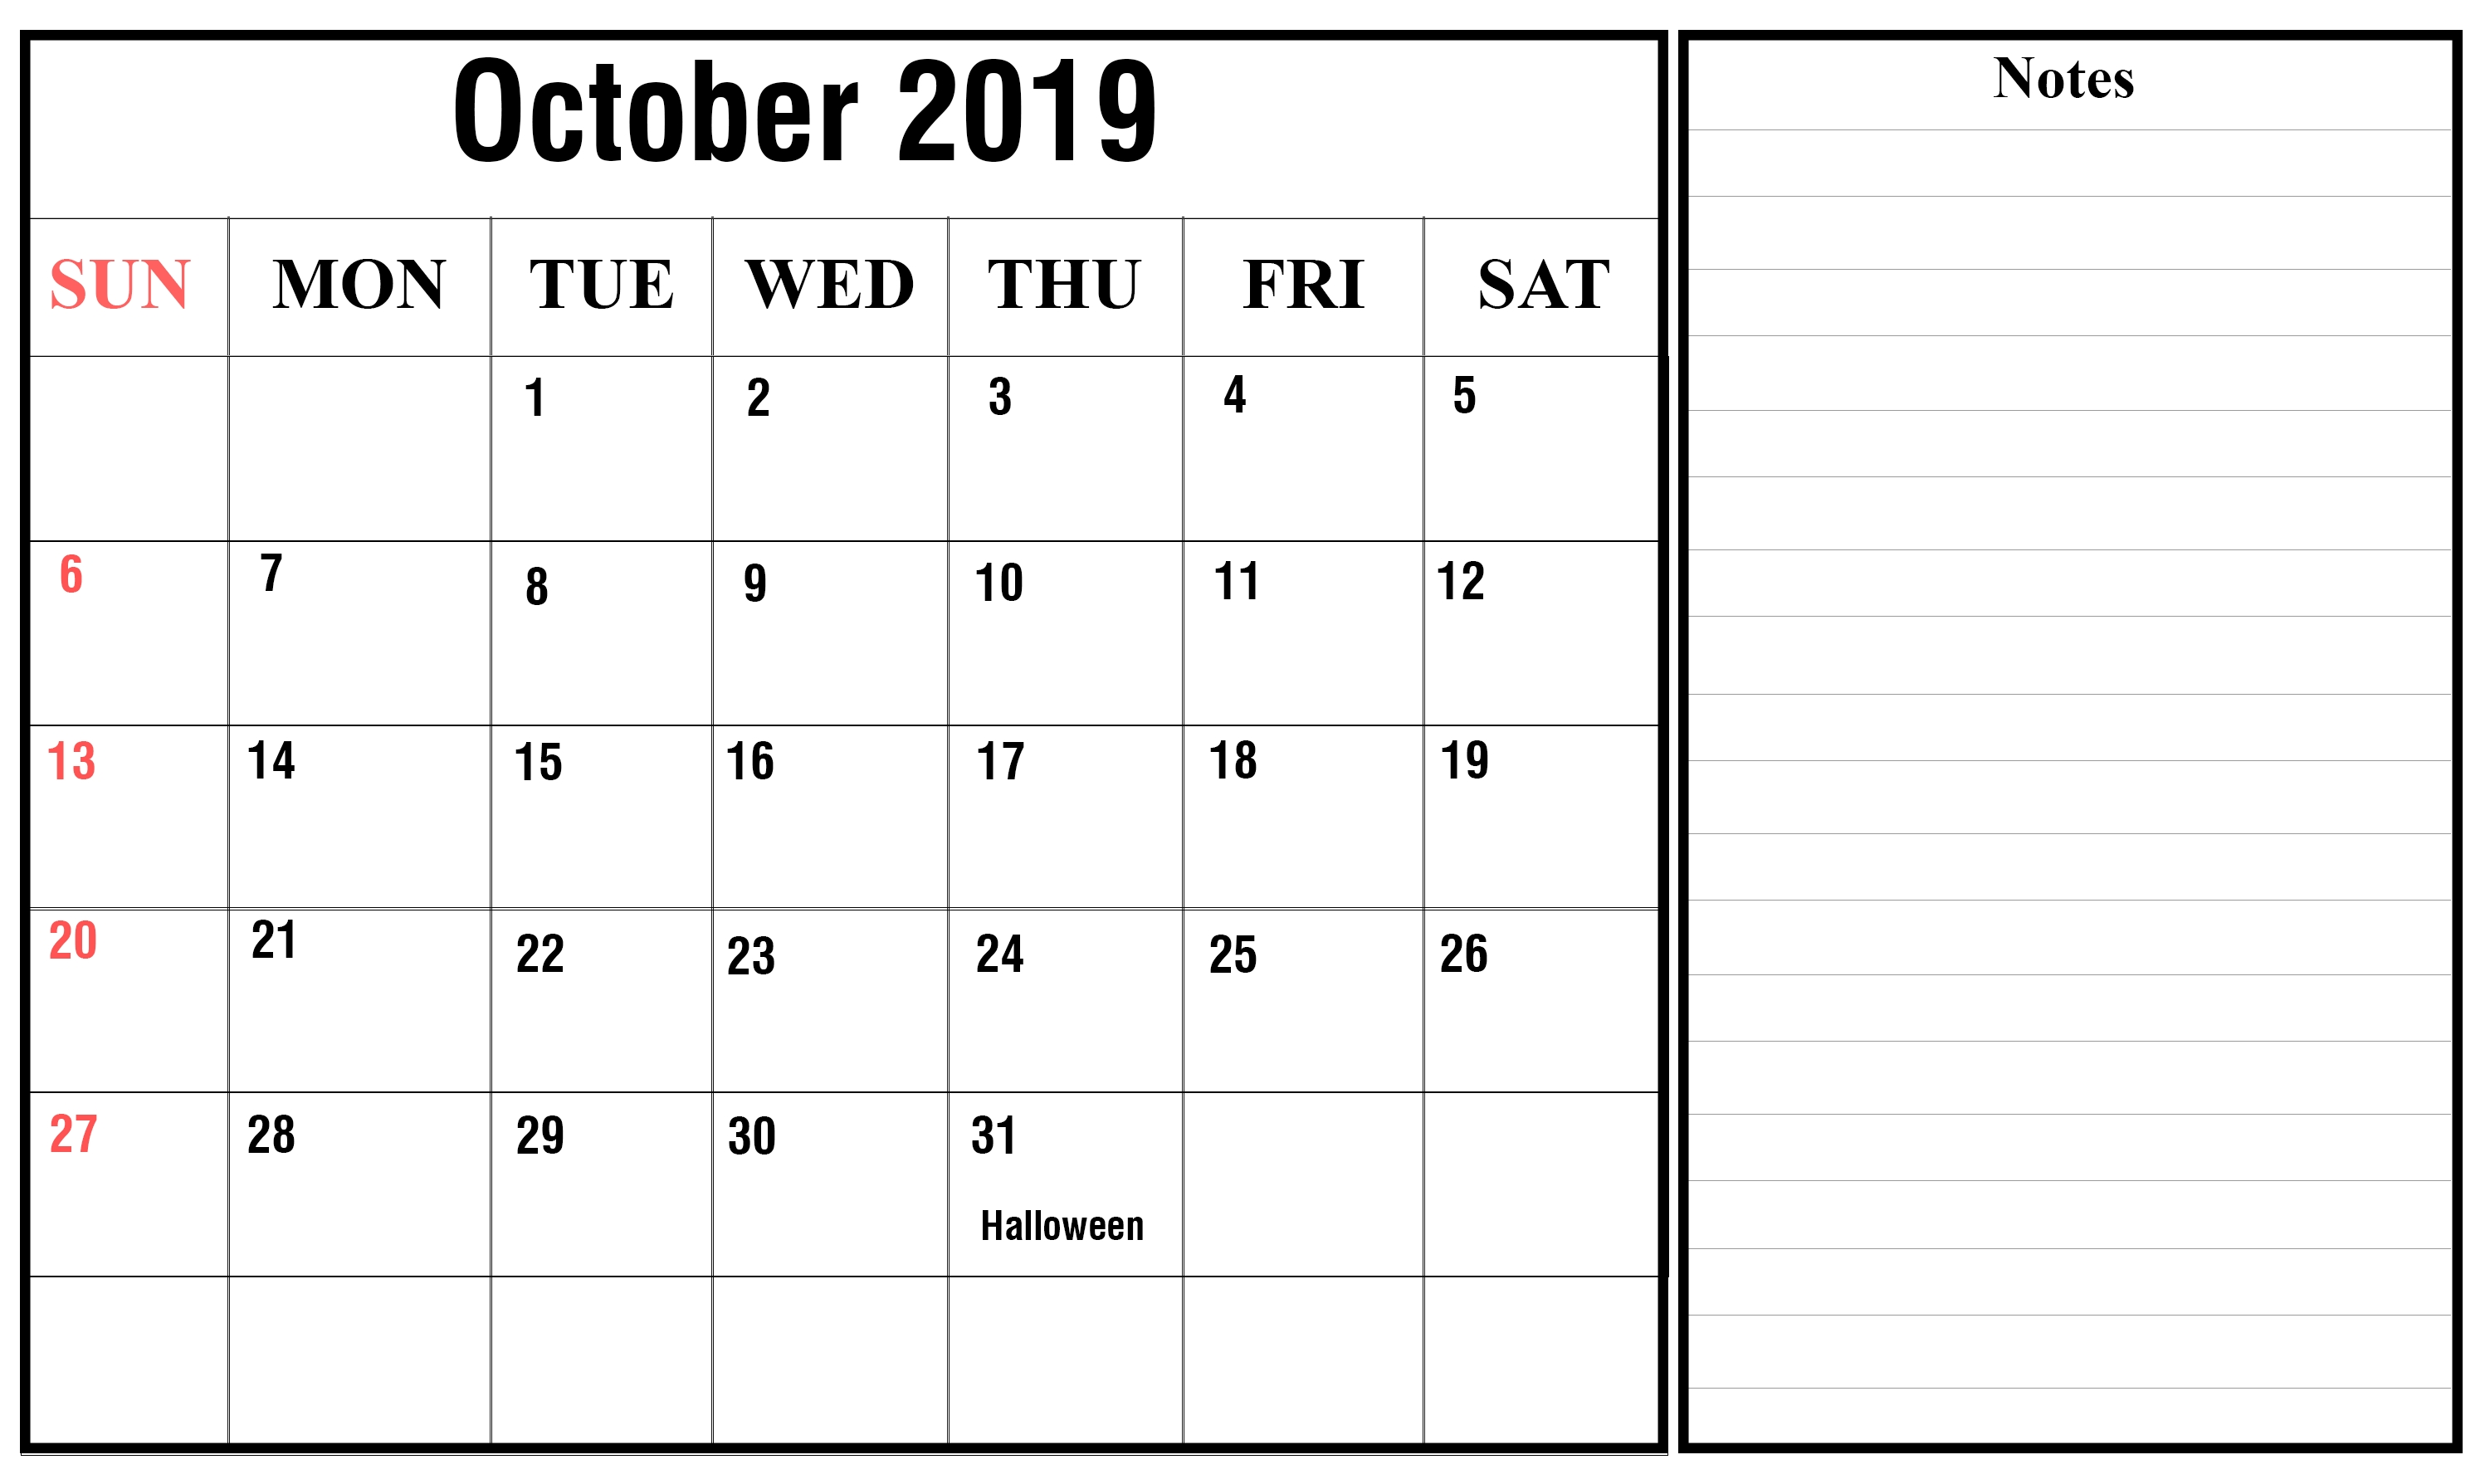 October 2019 Calendar Printable Template With Holidays